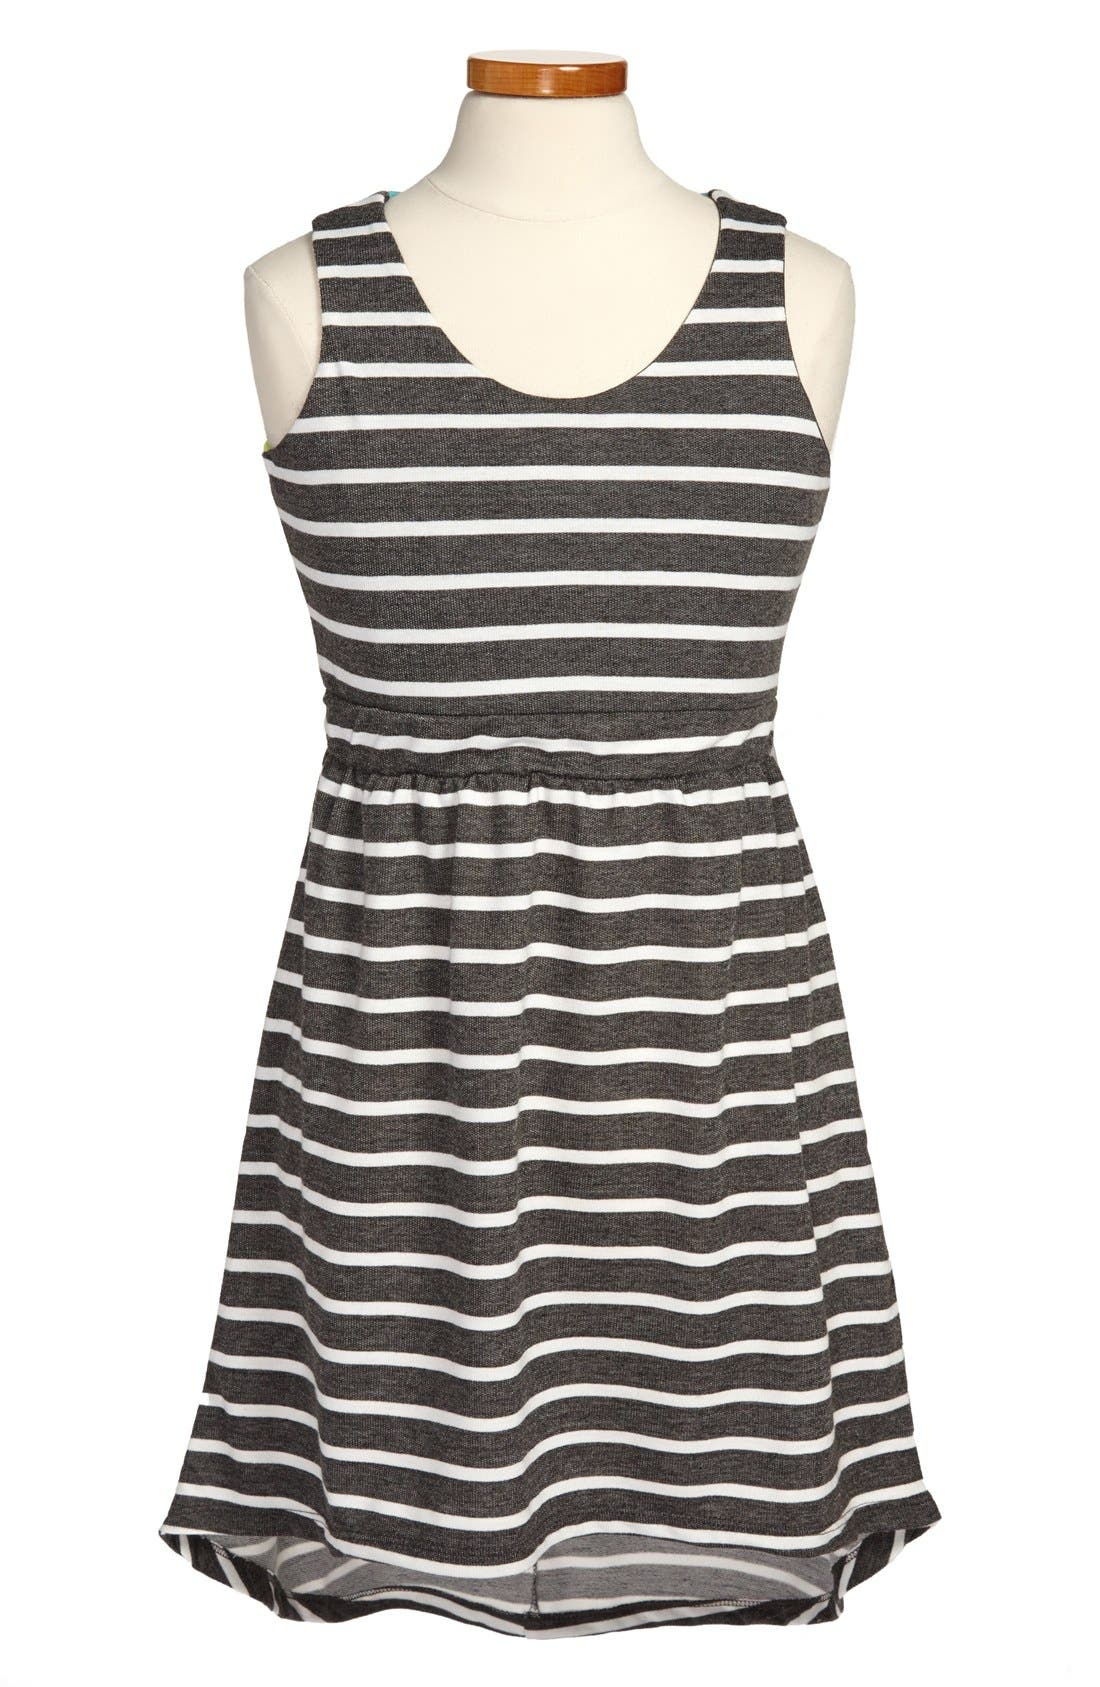 Alternate Image 1 Selected - W Girl Sleeveless High/Low Dress (Big Girls)